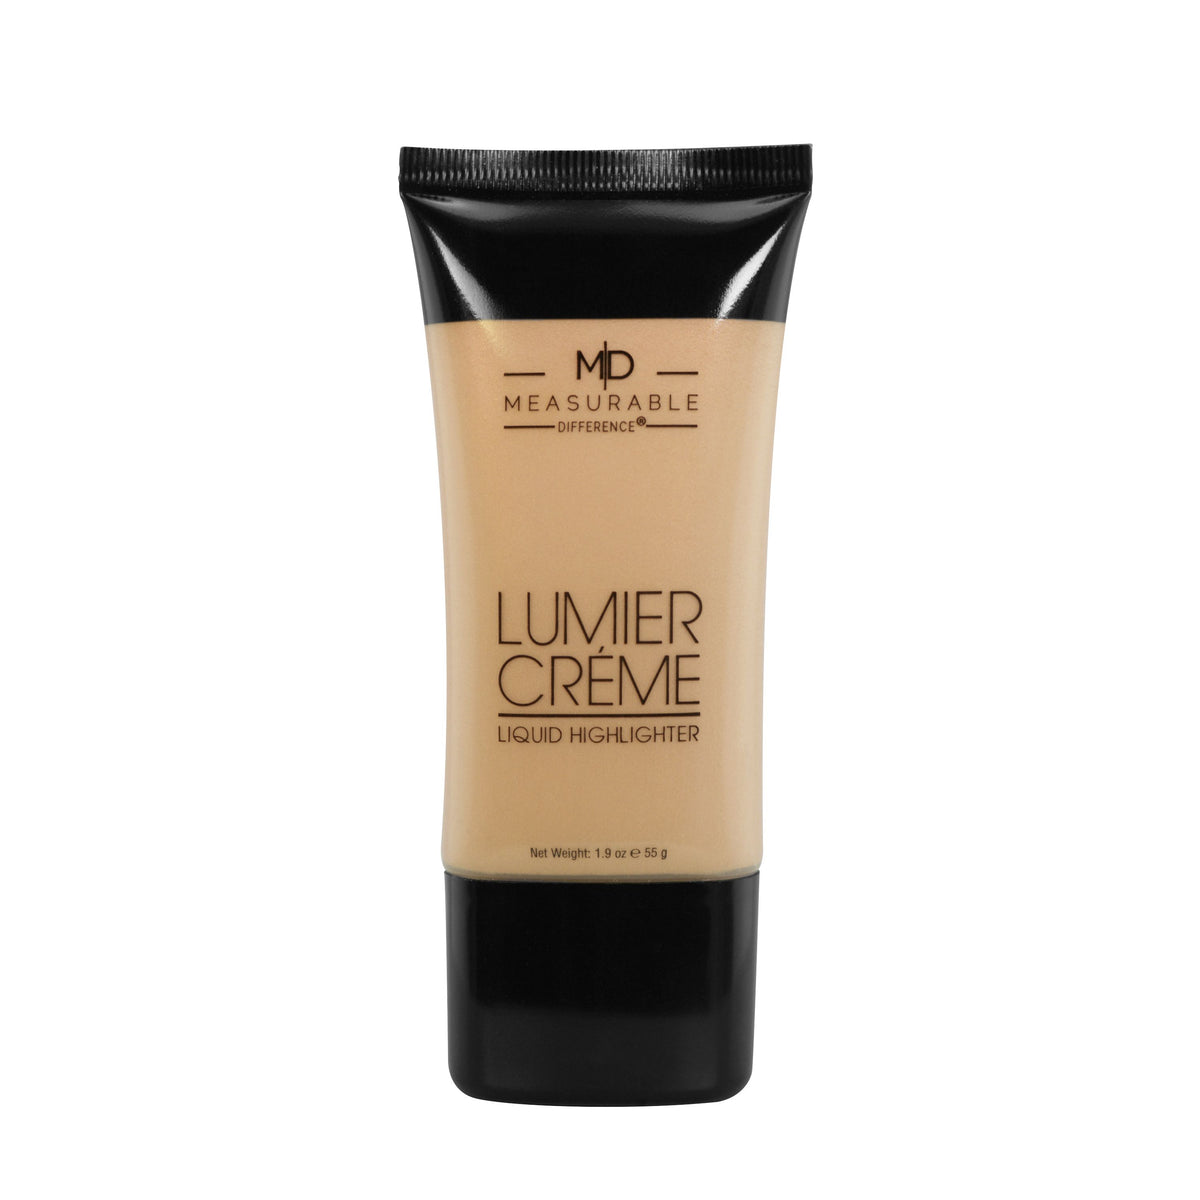 MD Lumier Creme Liquid Highlighter - Gold